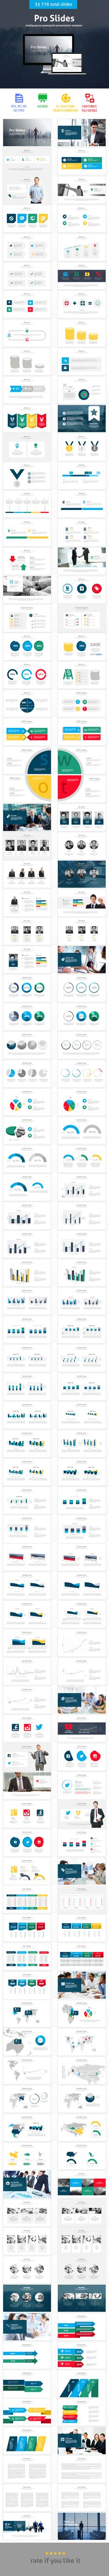 Compass business powerpoint presentation template powerpoint compass business powerpoint presentation template powerpoint design slides download httpgraphicriveritemcompass business powerpoint pr alramifo Image collections